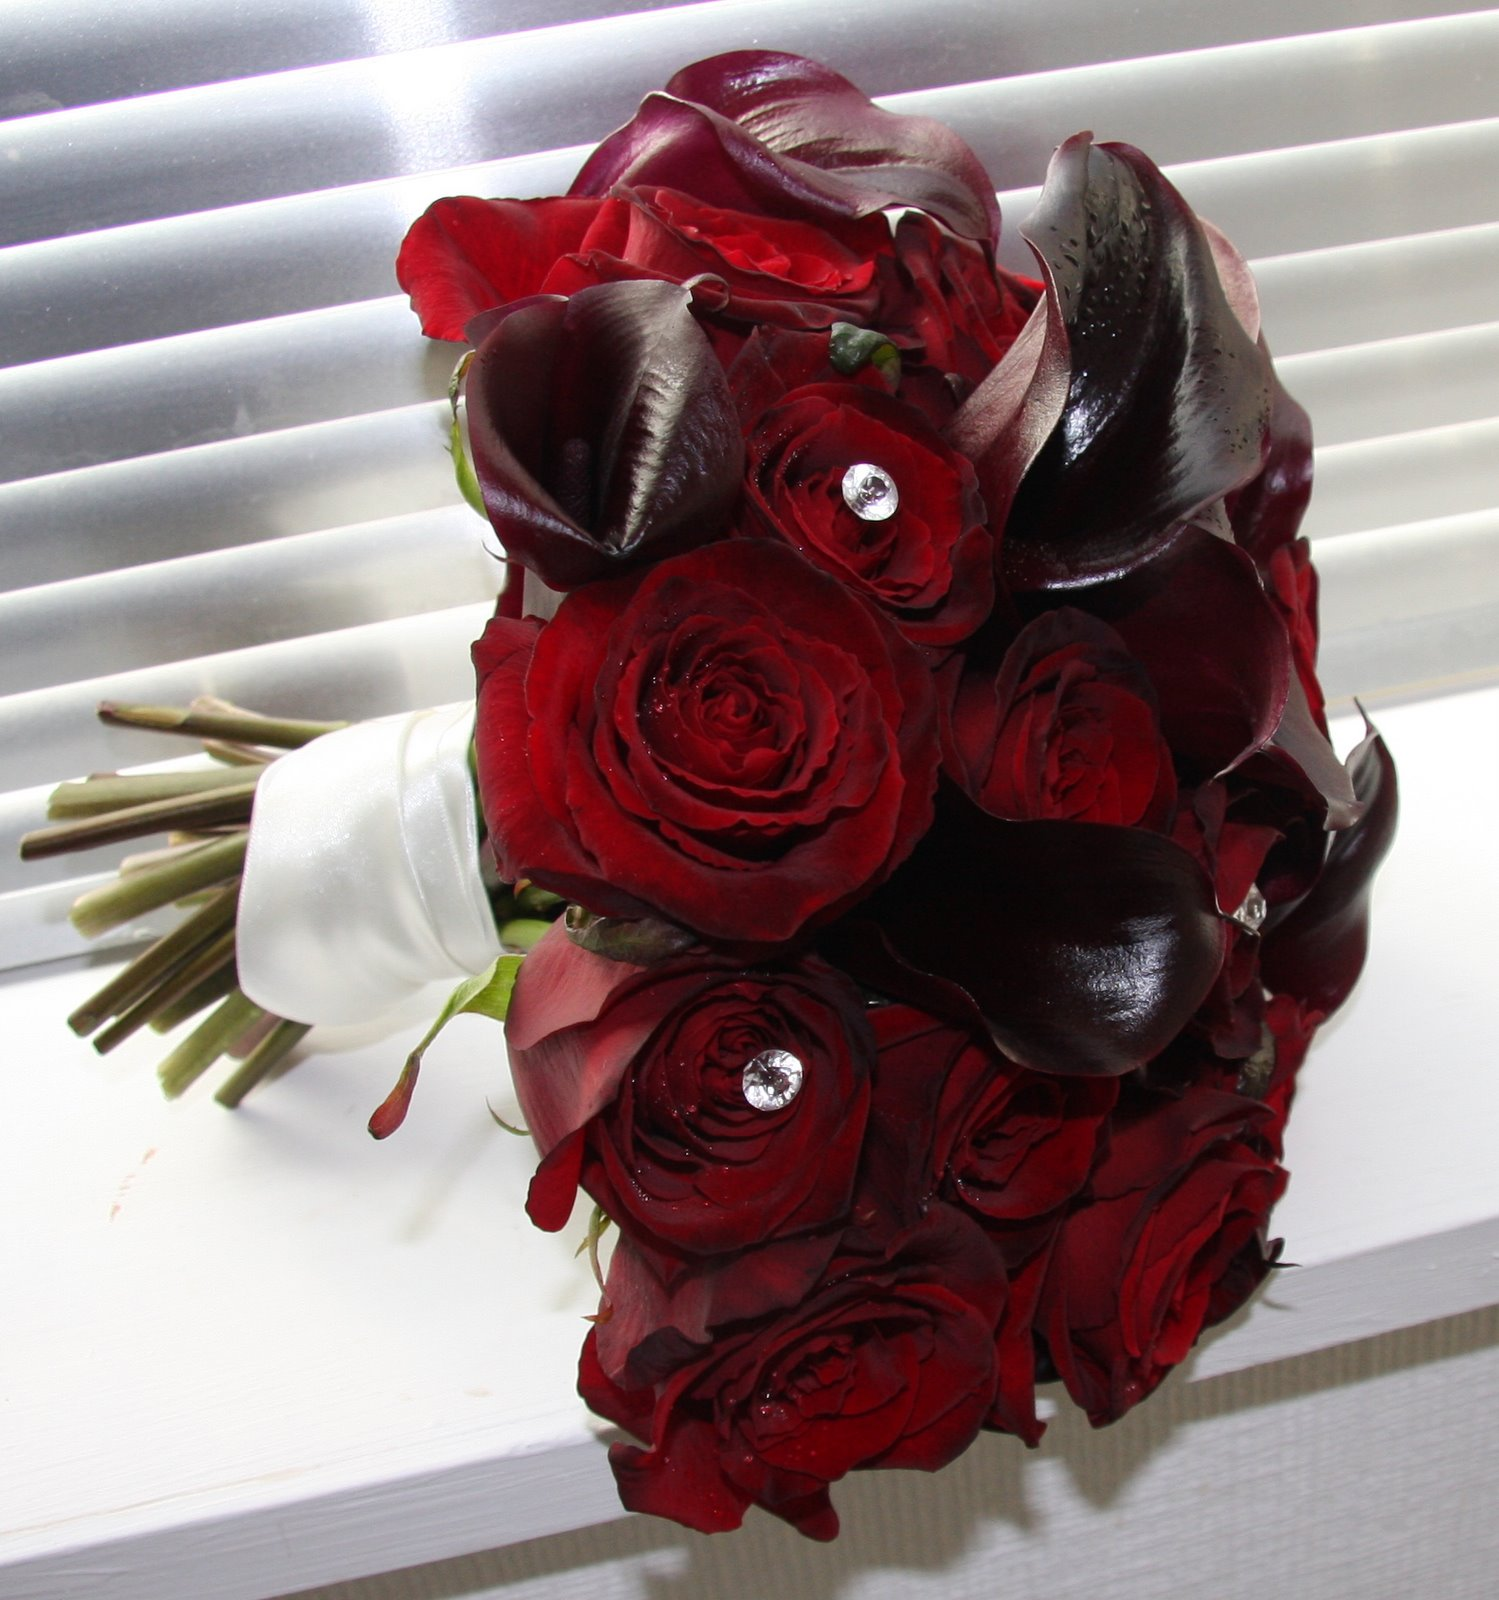 Red Rose Wedding Flowers: The Flower Magician: Passionate Wedding Bouquet Of Red